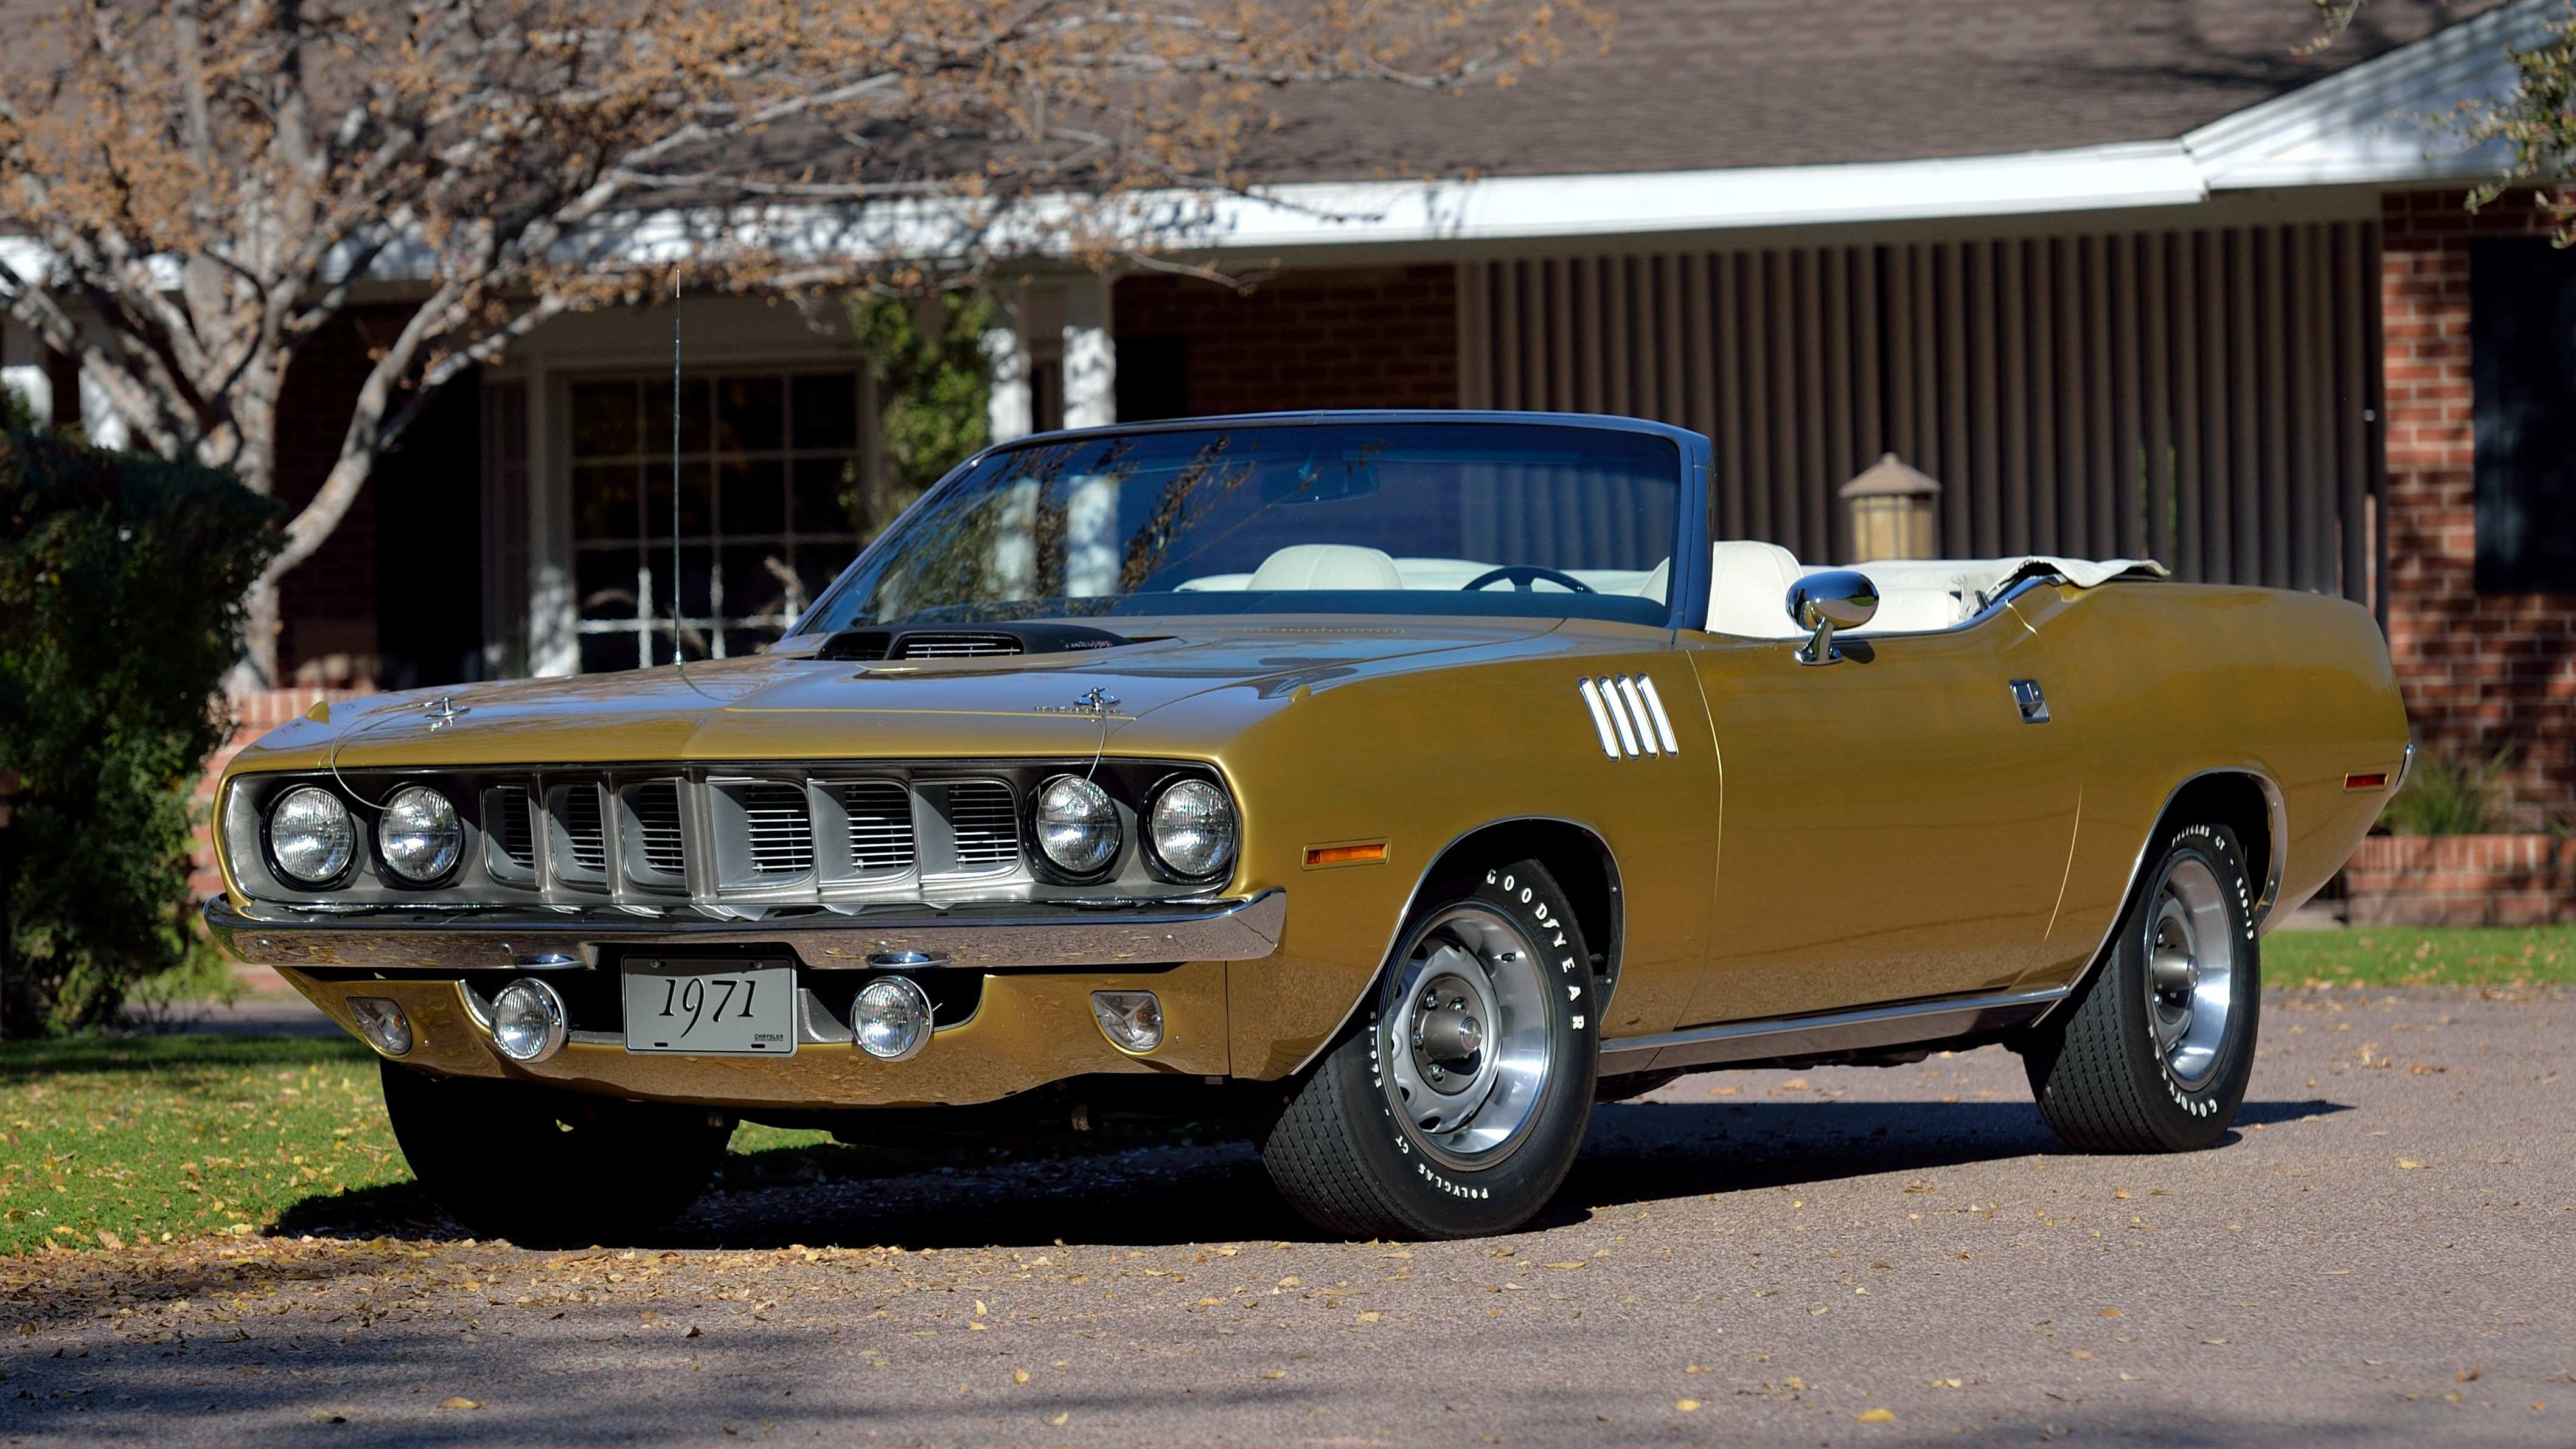 1971 Plymouth Cuda Convertible 1 of 5 V-Code 4-Speed Convertibles Produced (Lot S87) - Mecum Phoenix